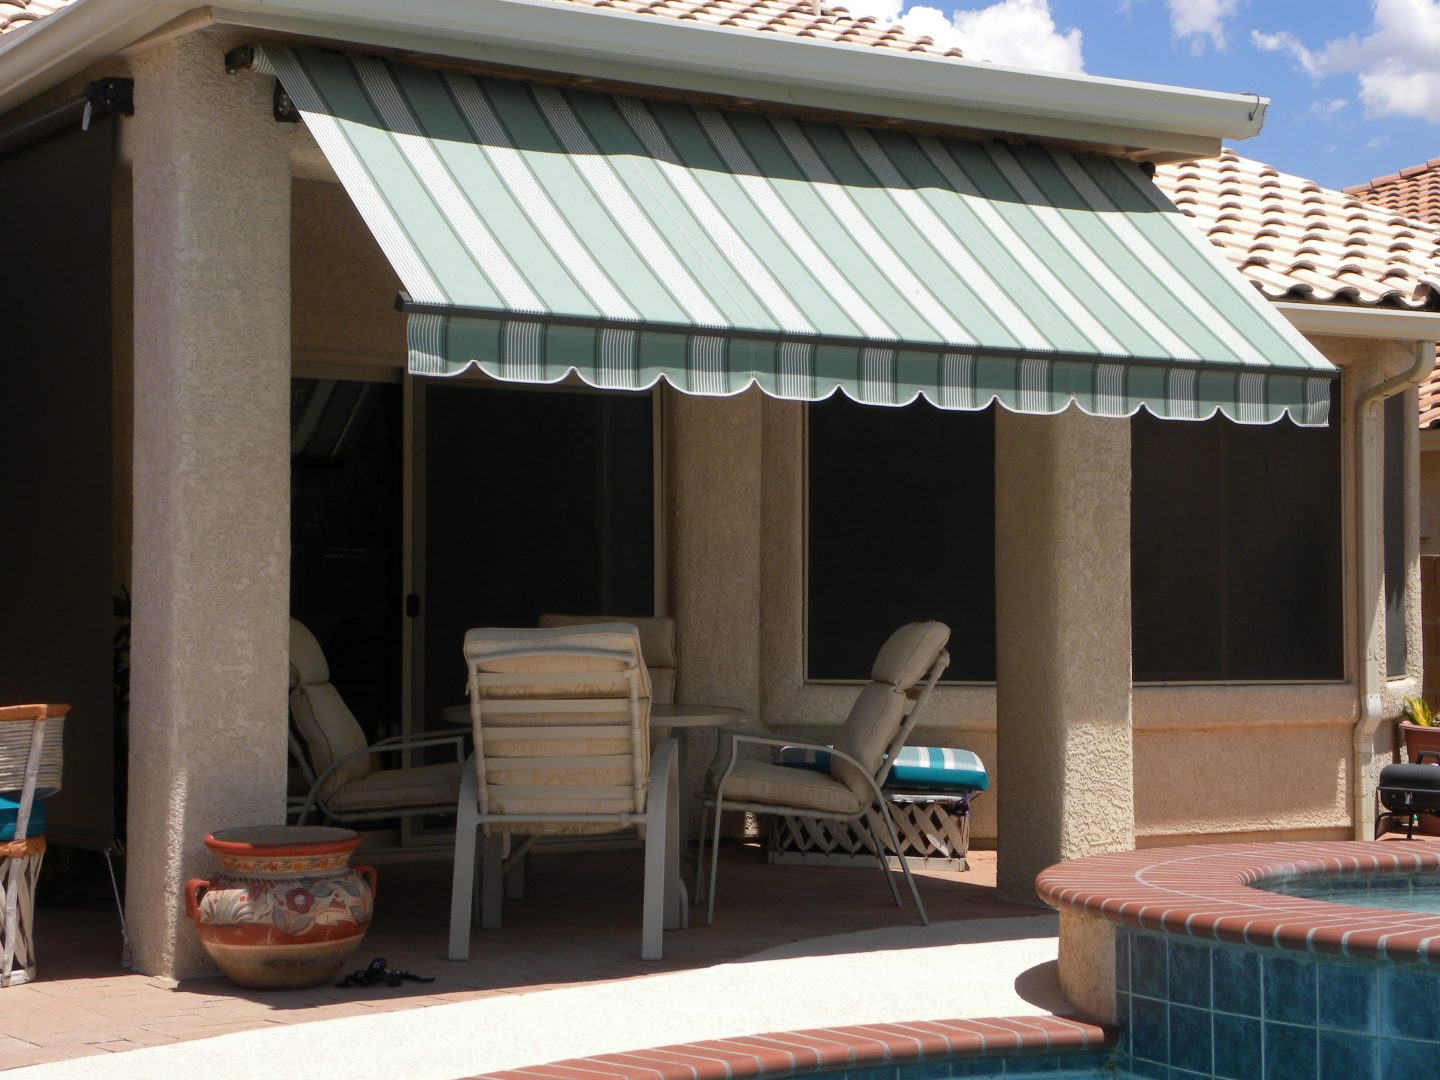 Retractable Canopies Product : Residential retractable awnings air and sun shade products